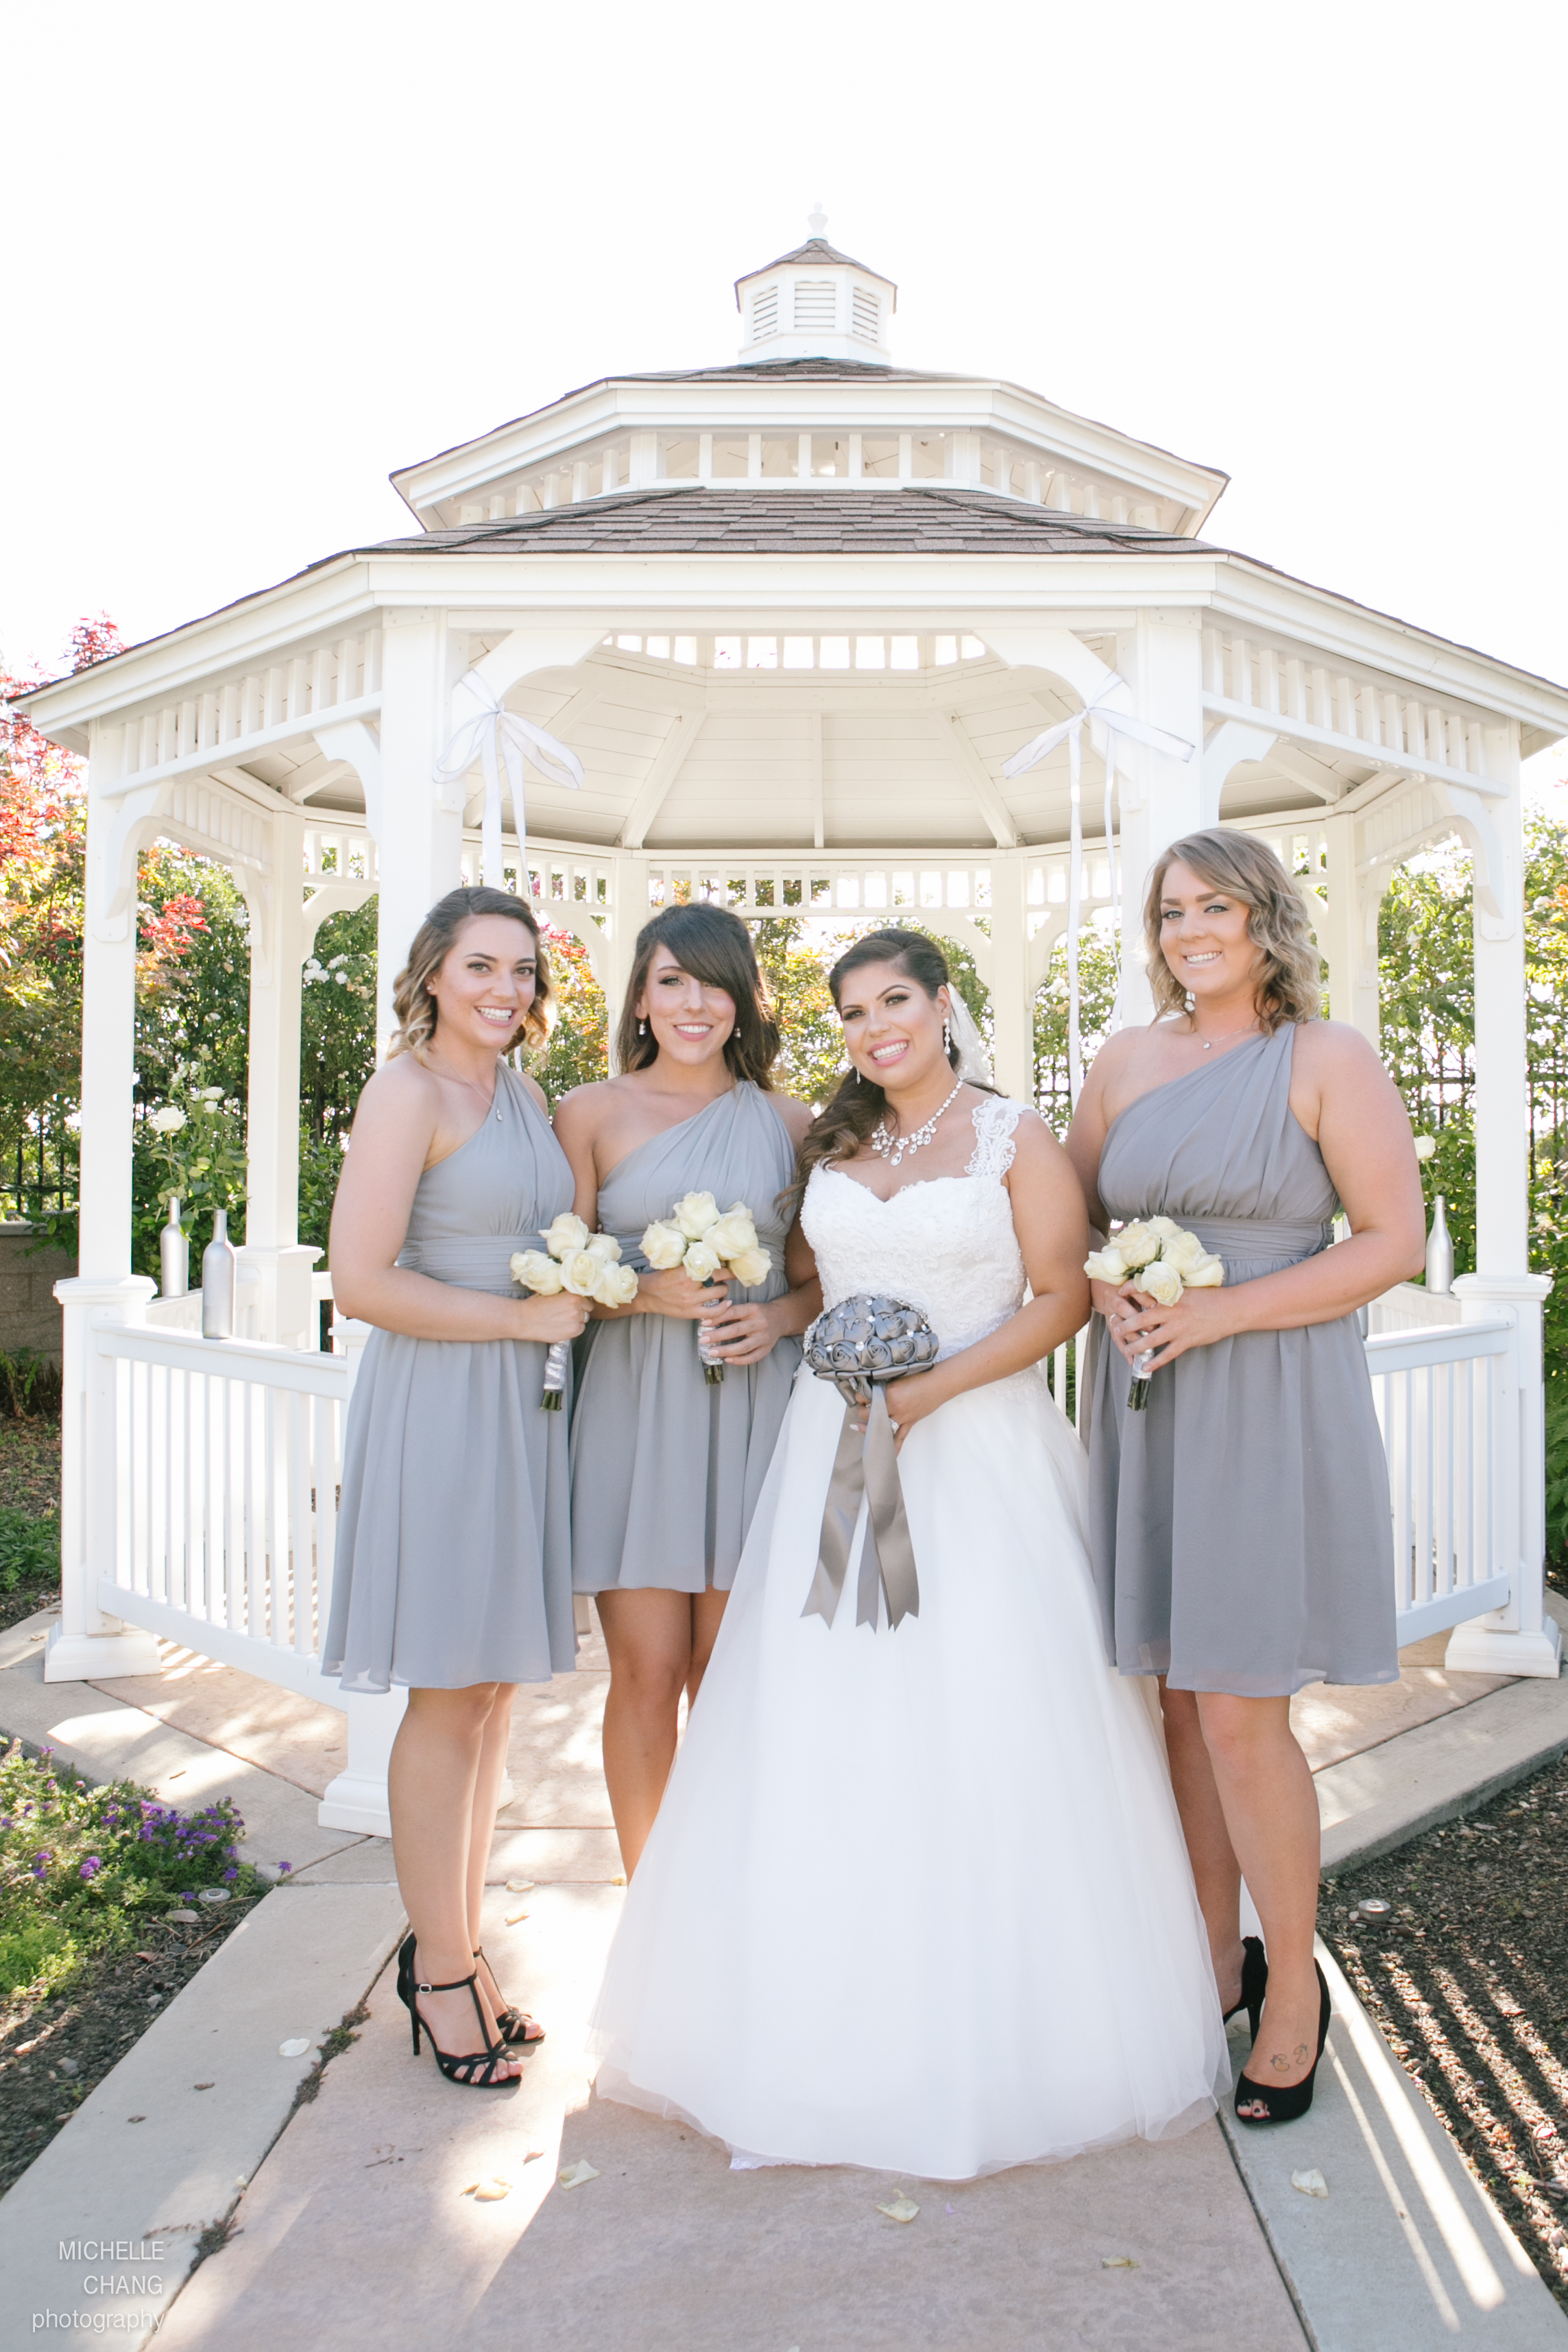 Rocklin Wedding Photographer-Rocklin Event Center-Michelle Chang Photography